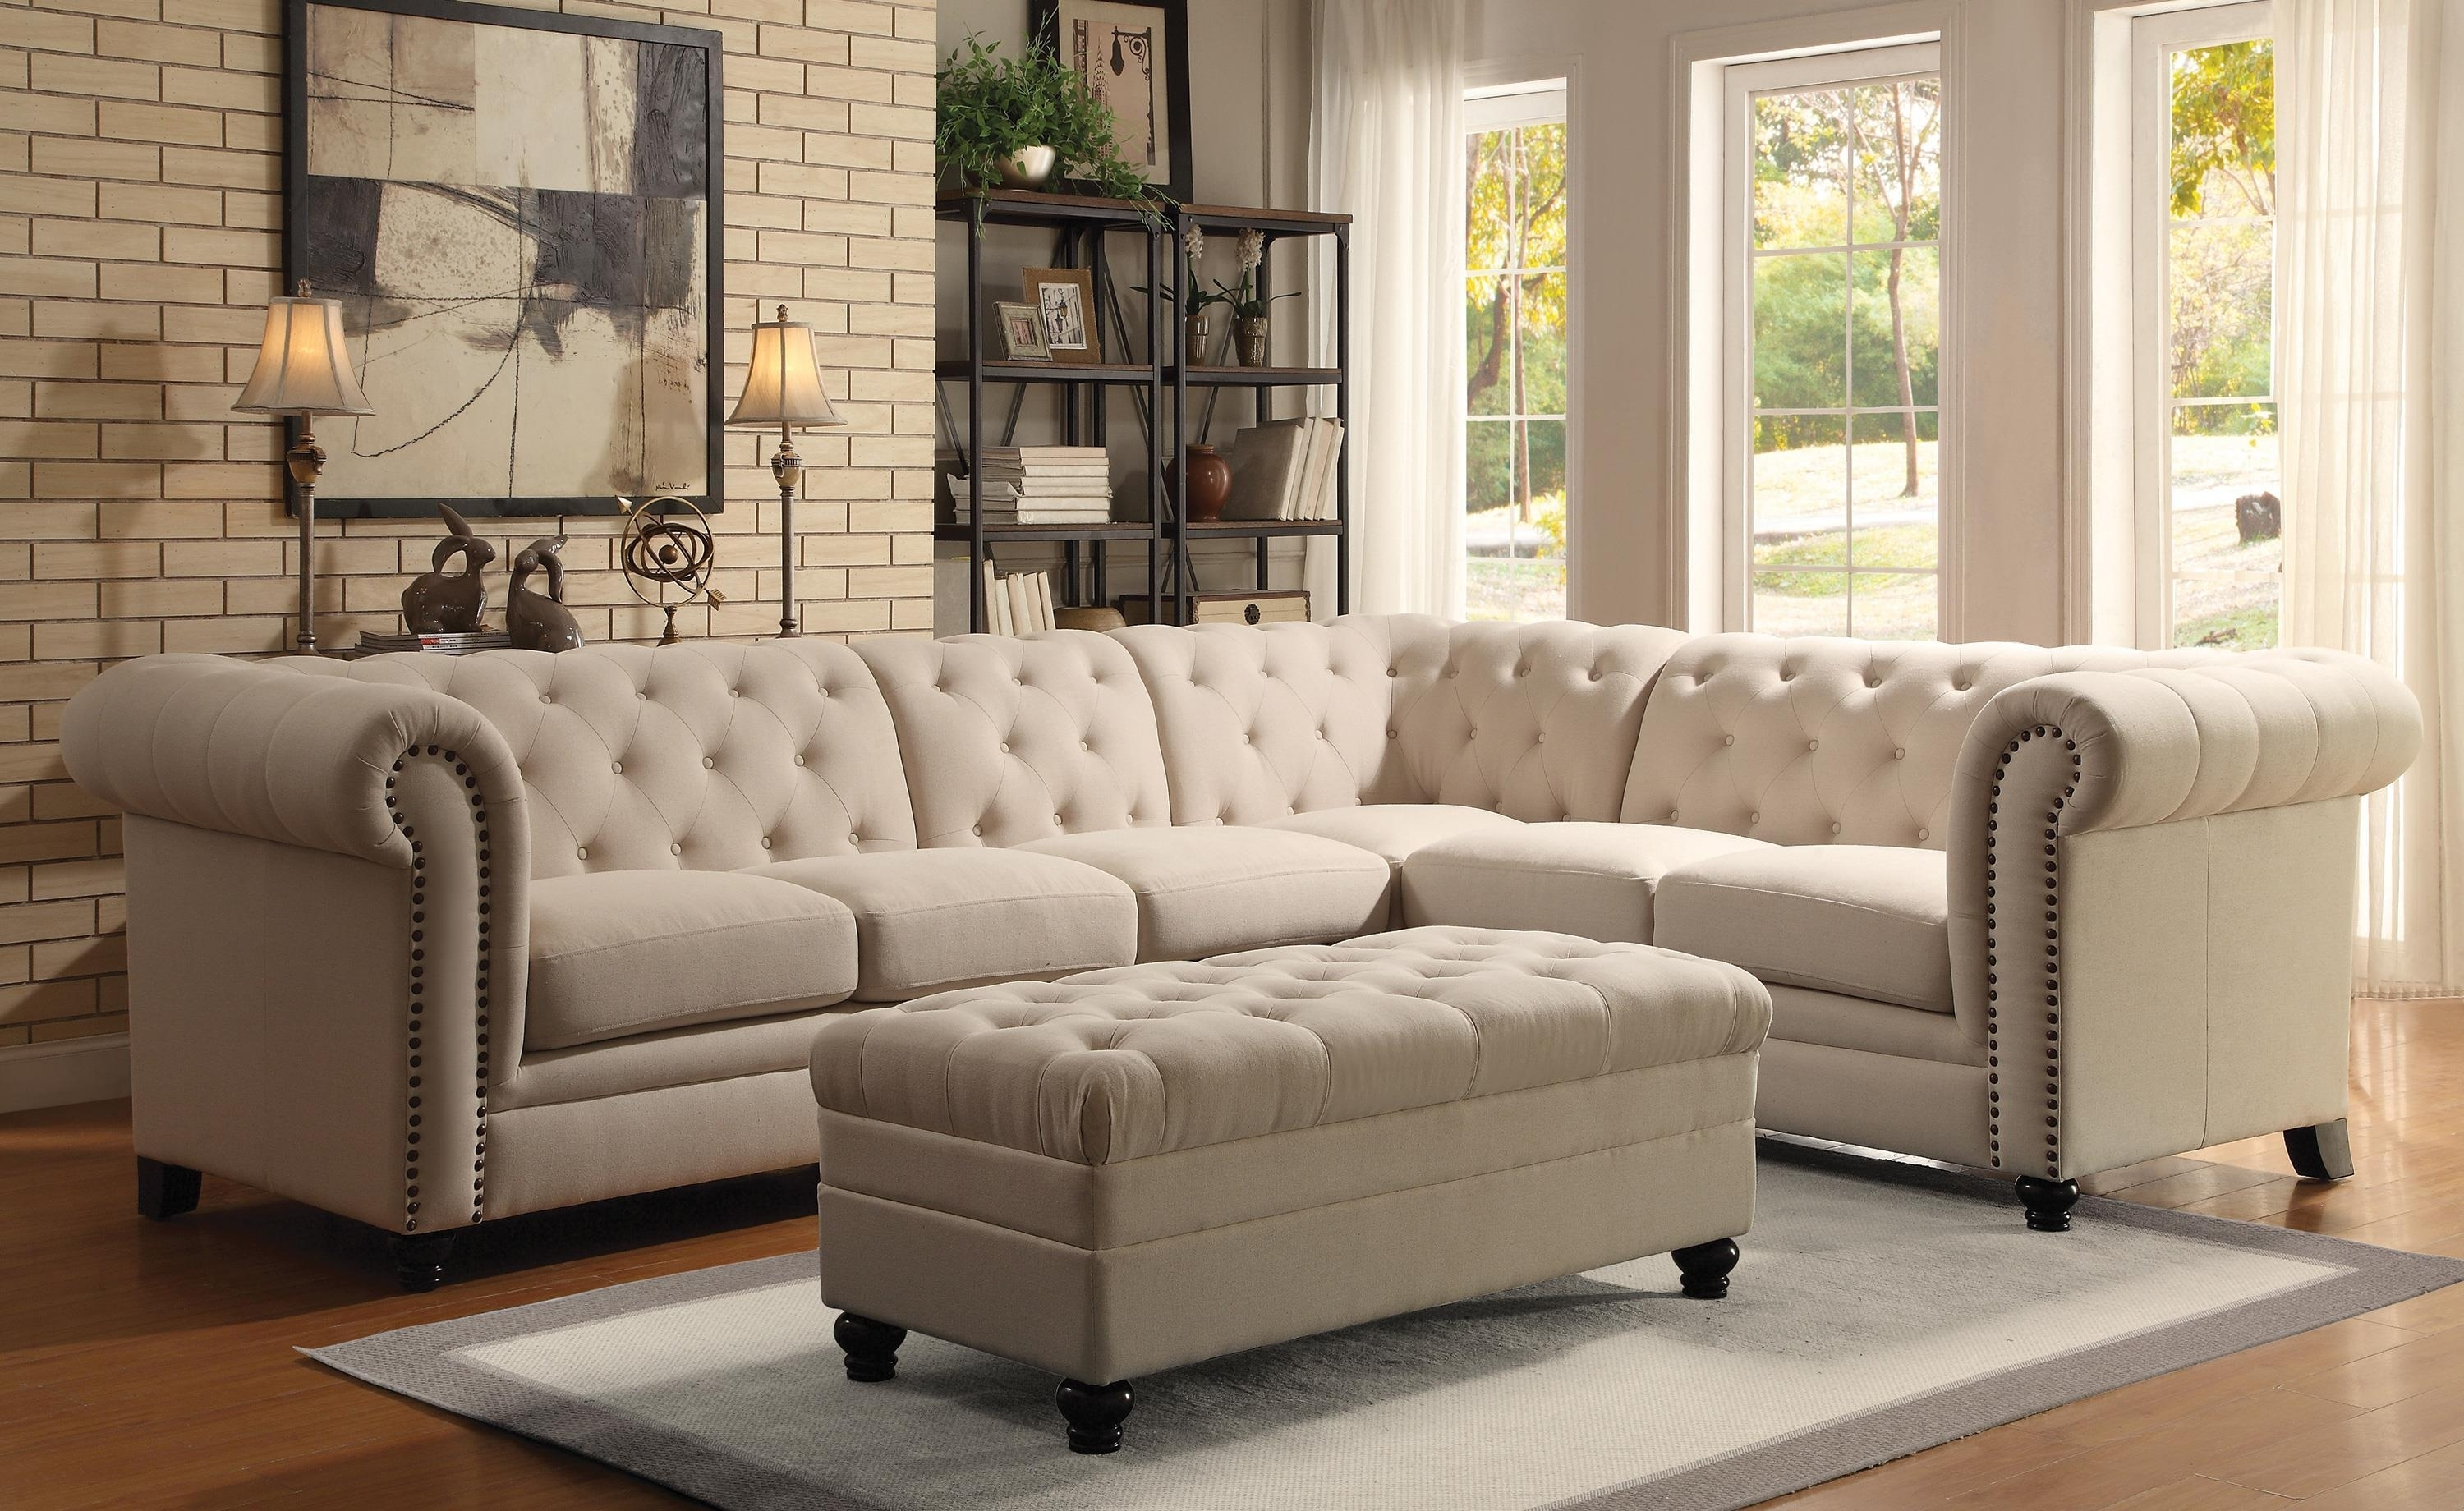 20+ Choices Of Tufted Sectional With Chaise | Sofa Ideas Regarding Tufted Sectional Sofas (Gallery 1 of 10)